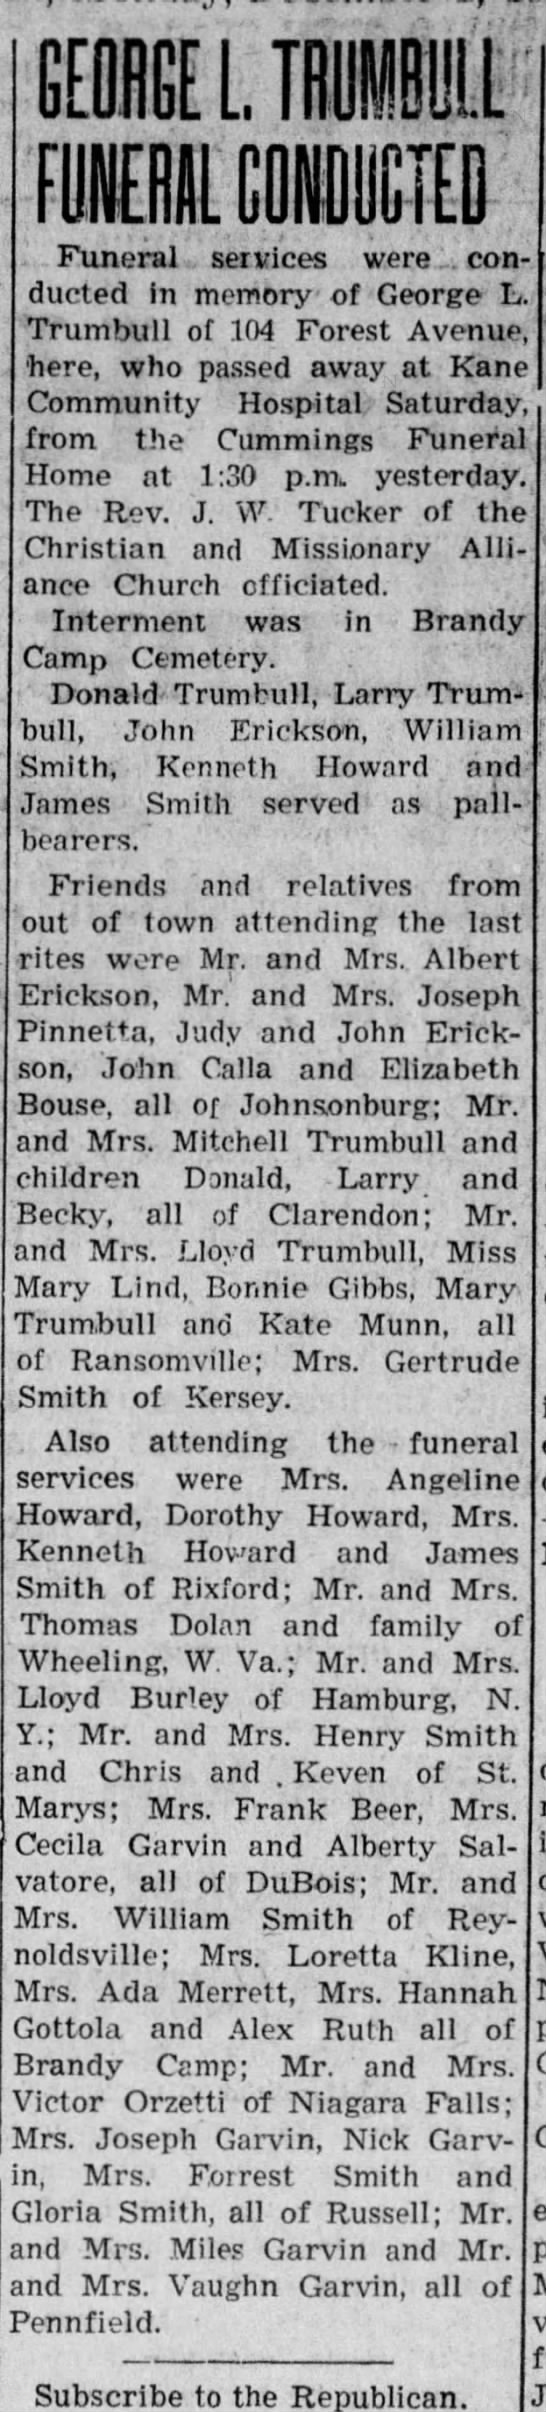 George - t. .. Funeral , services were ',. conducted...